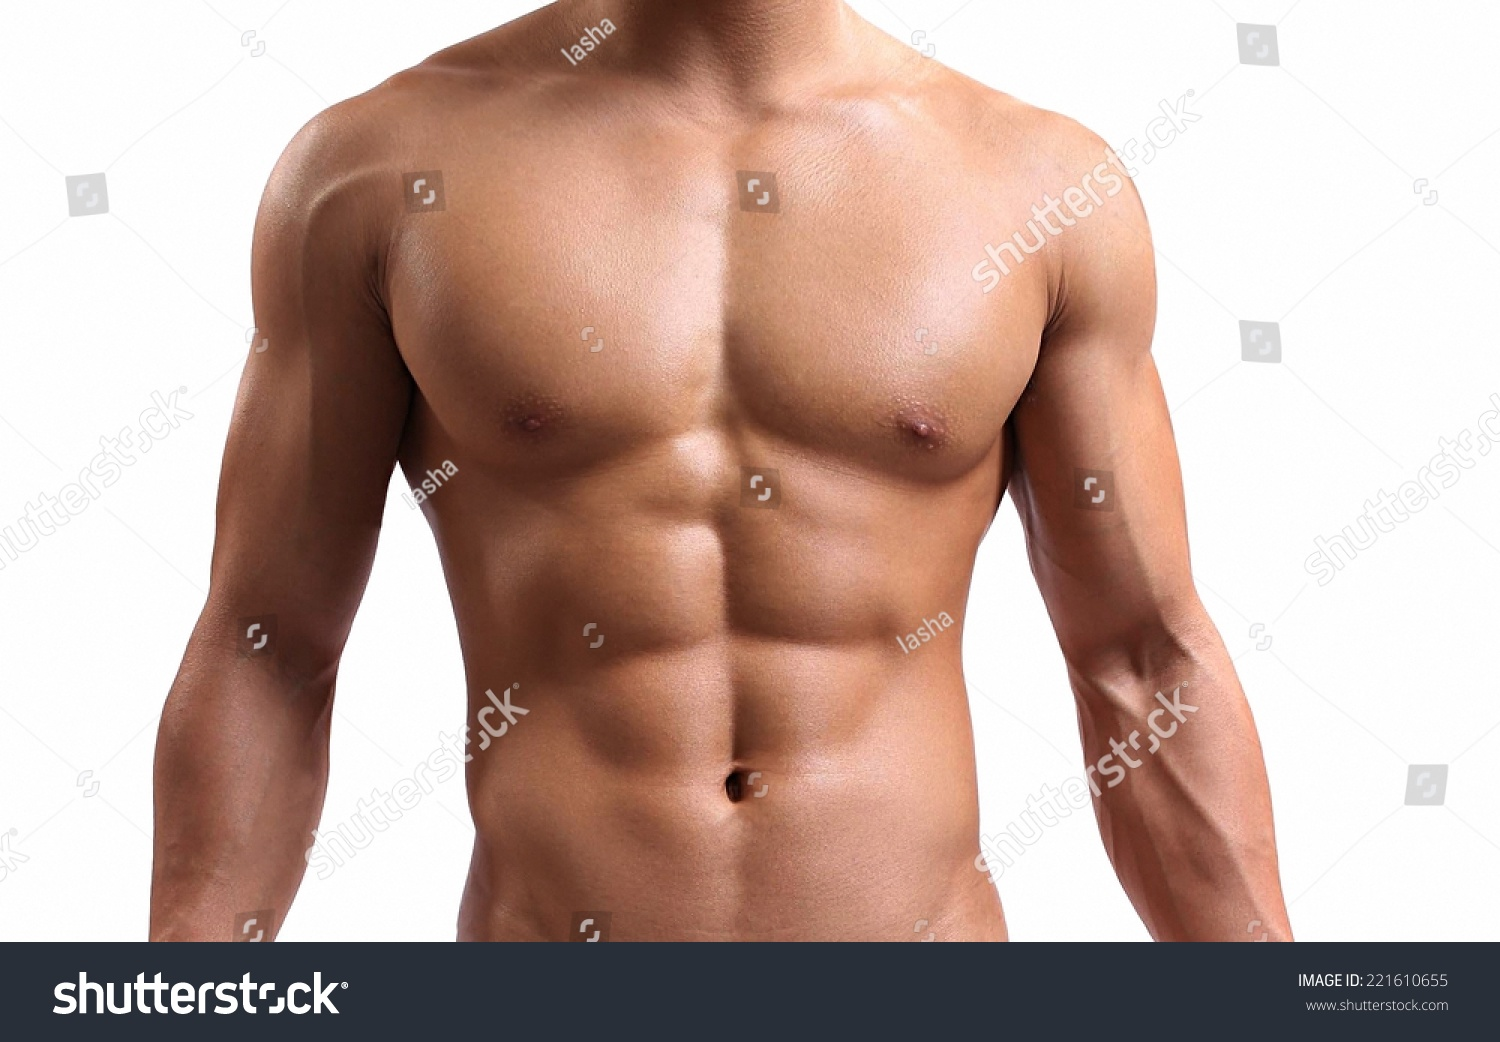 How to Get a Hollywood Body